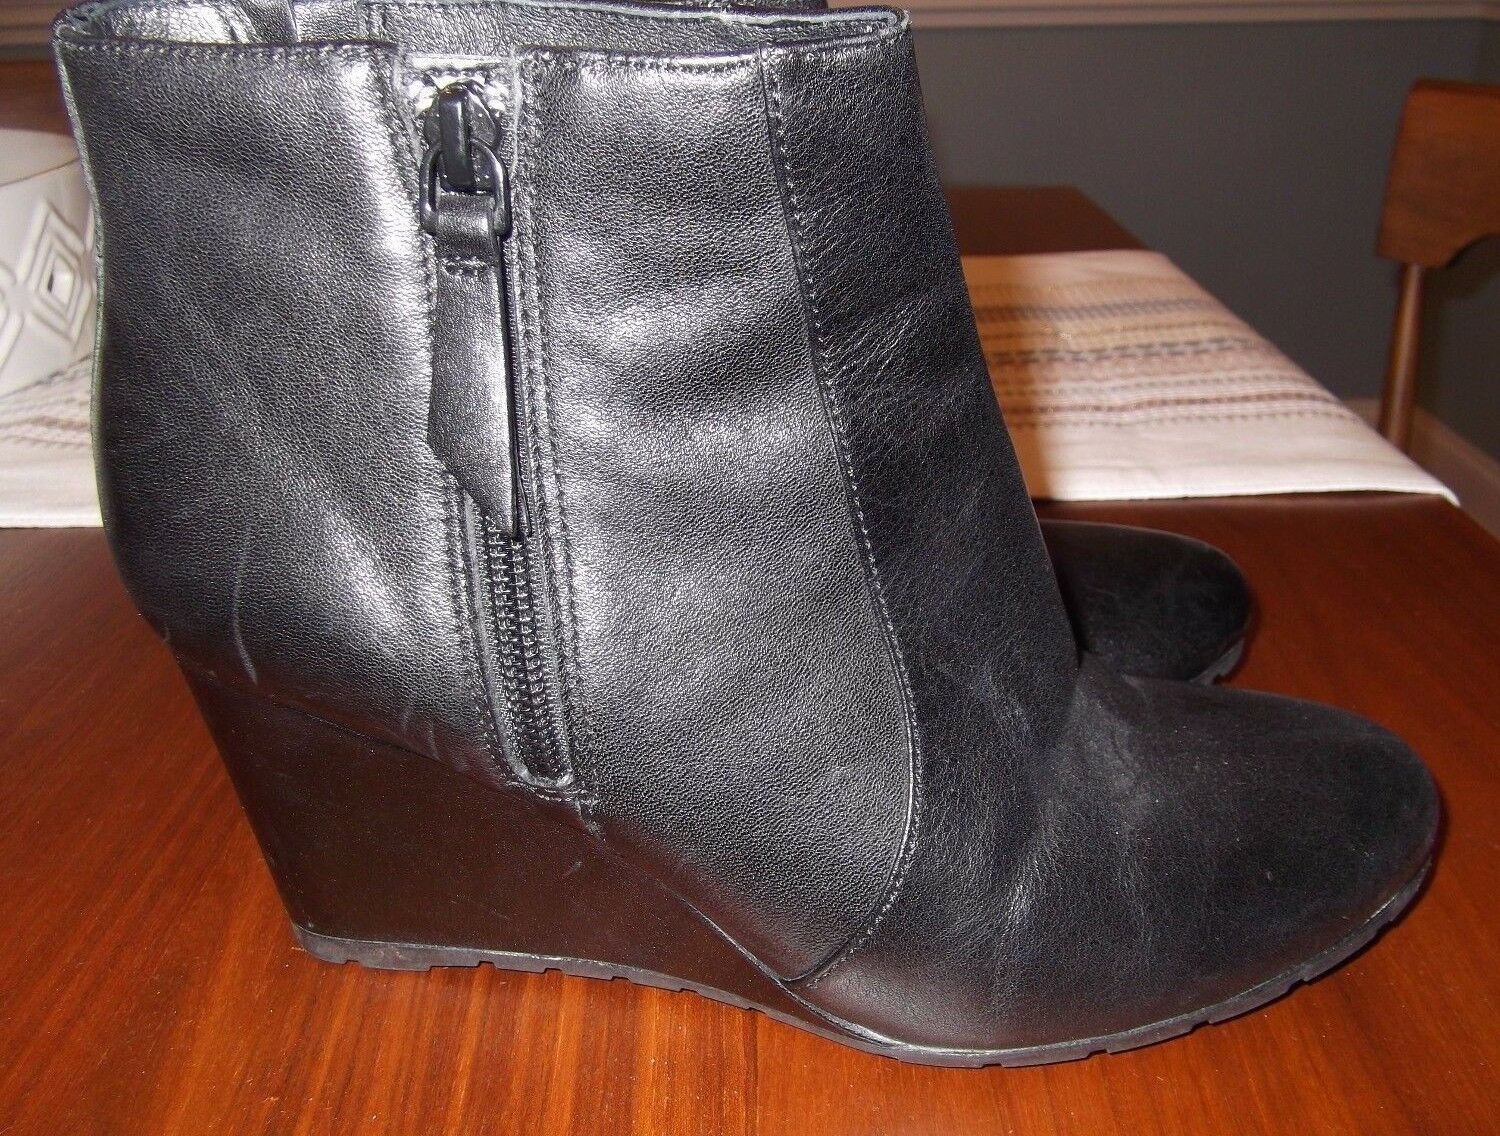 CLARKS Artisan womens black ankle boots WEDGE heel ankle size 8M ec